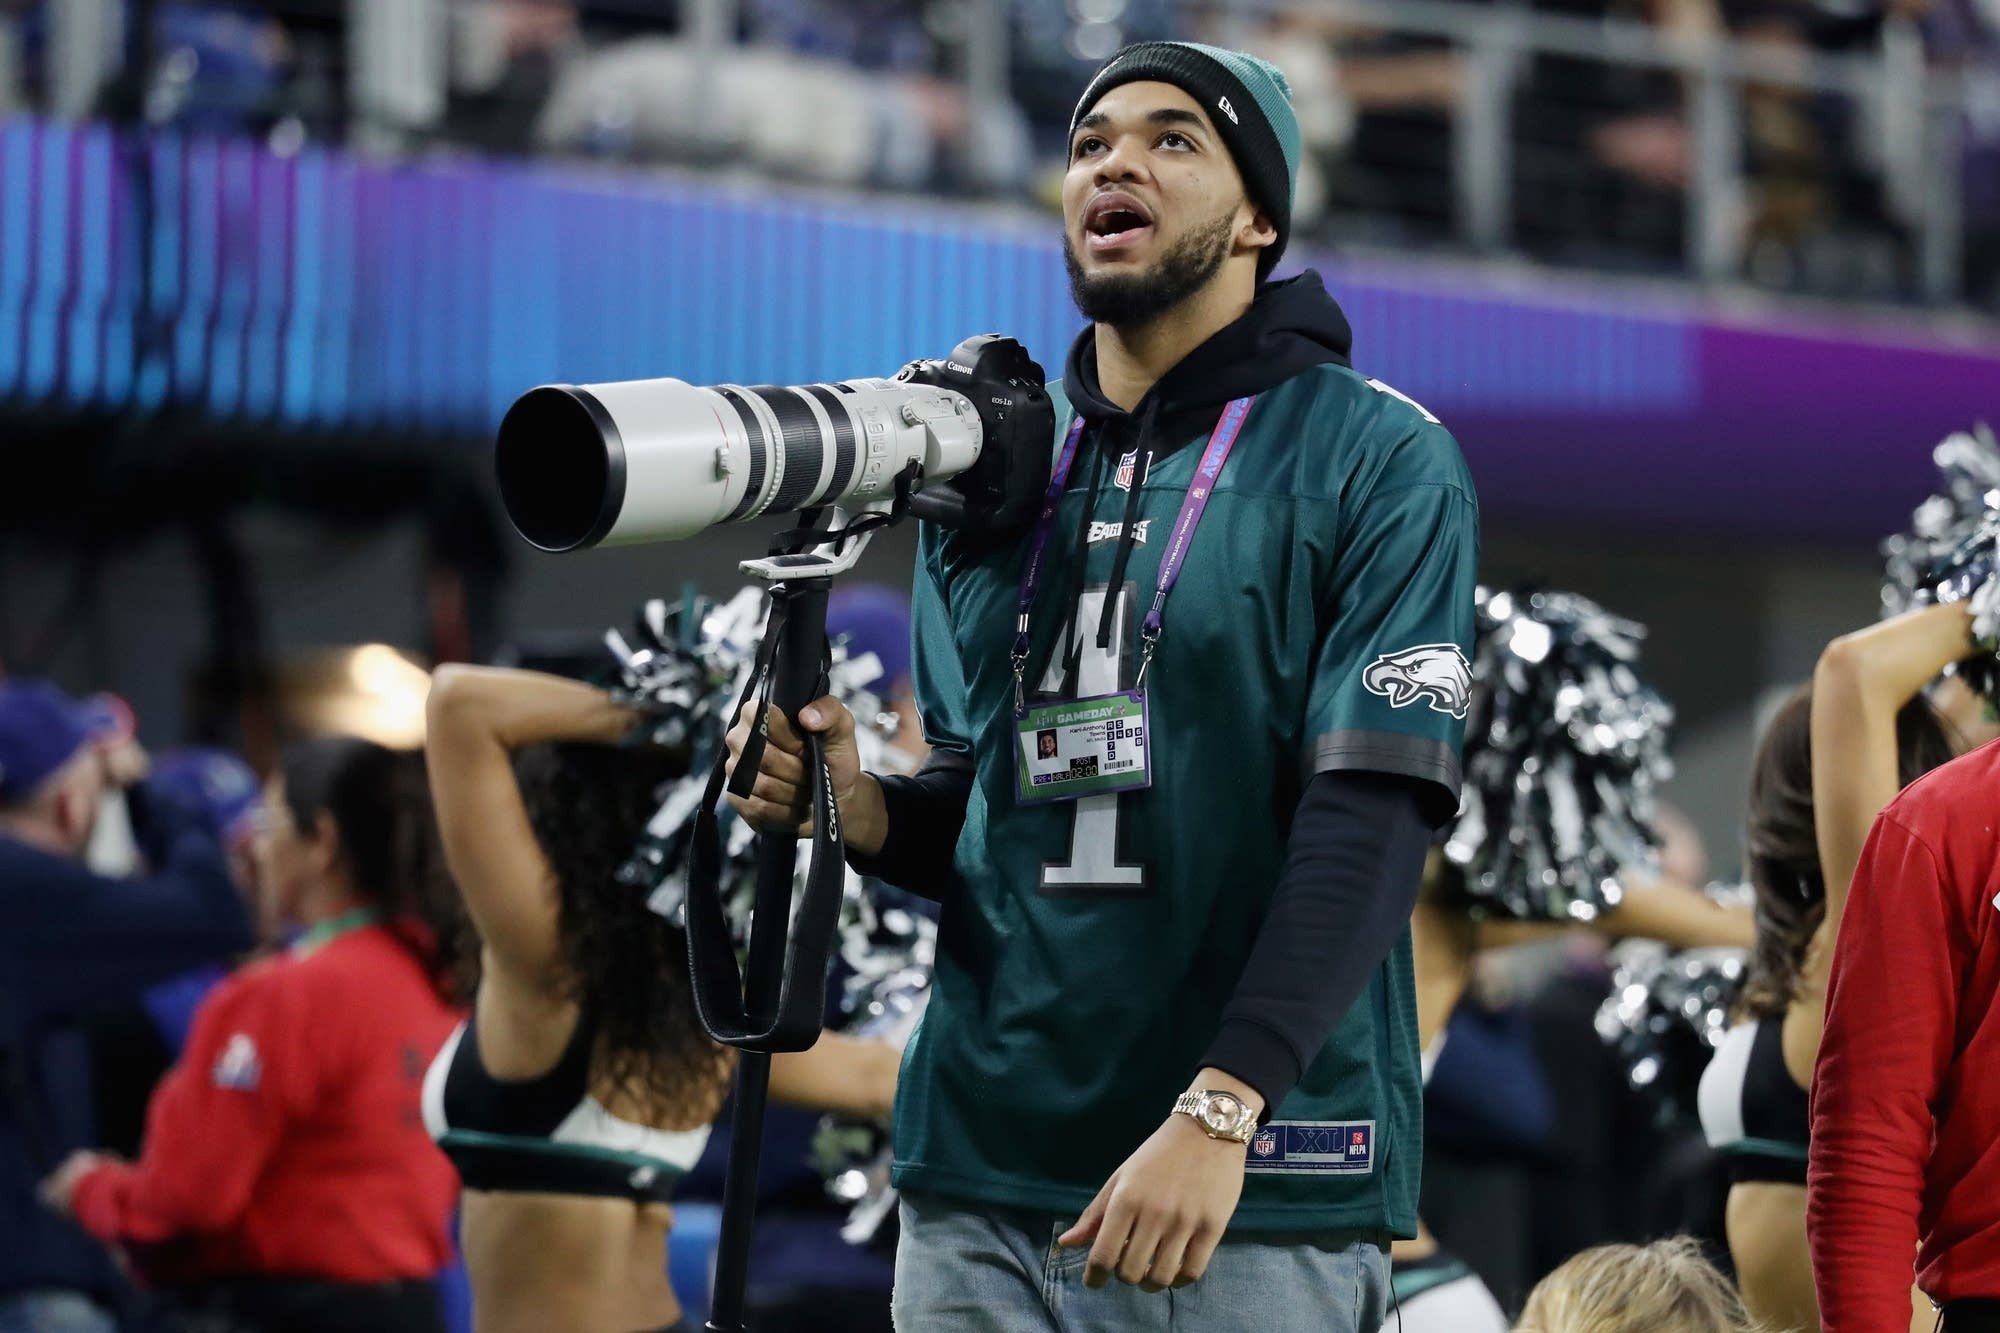 Karl-Anthony Towns of the Timberwolves on the sidelines as a photographer.